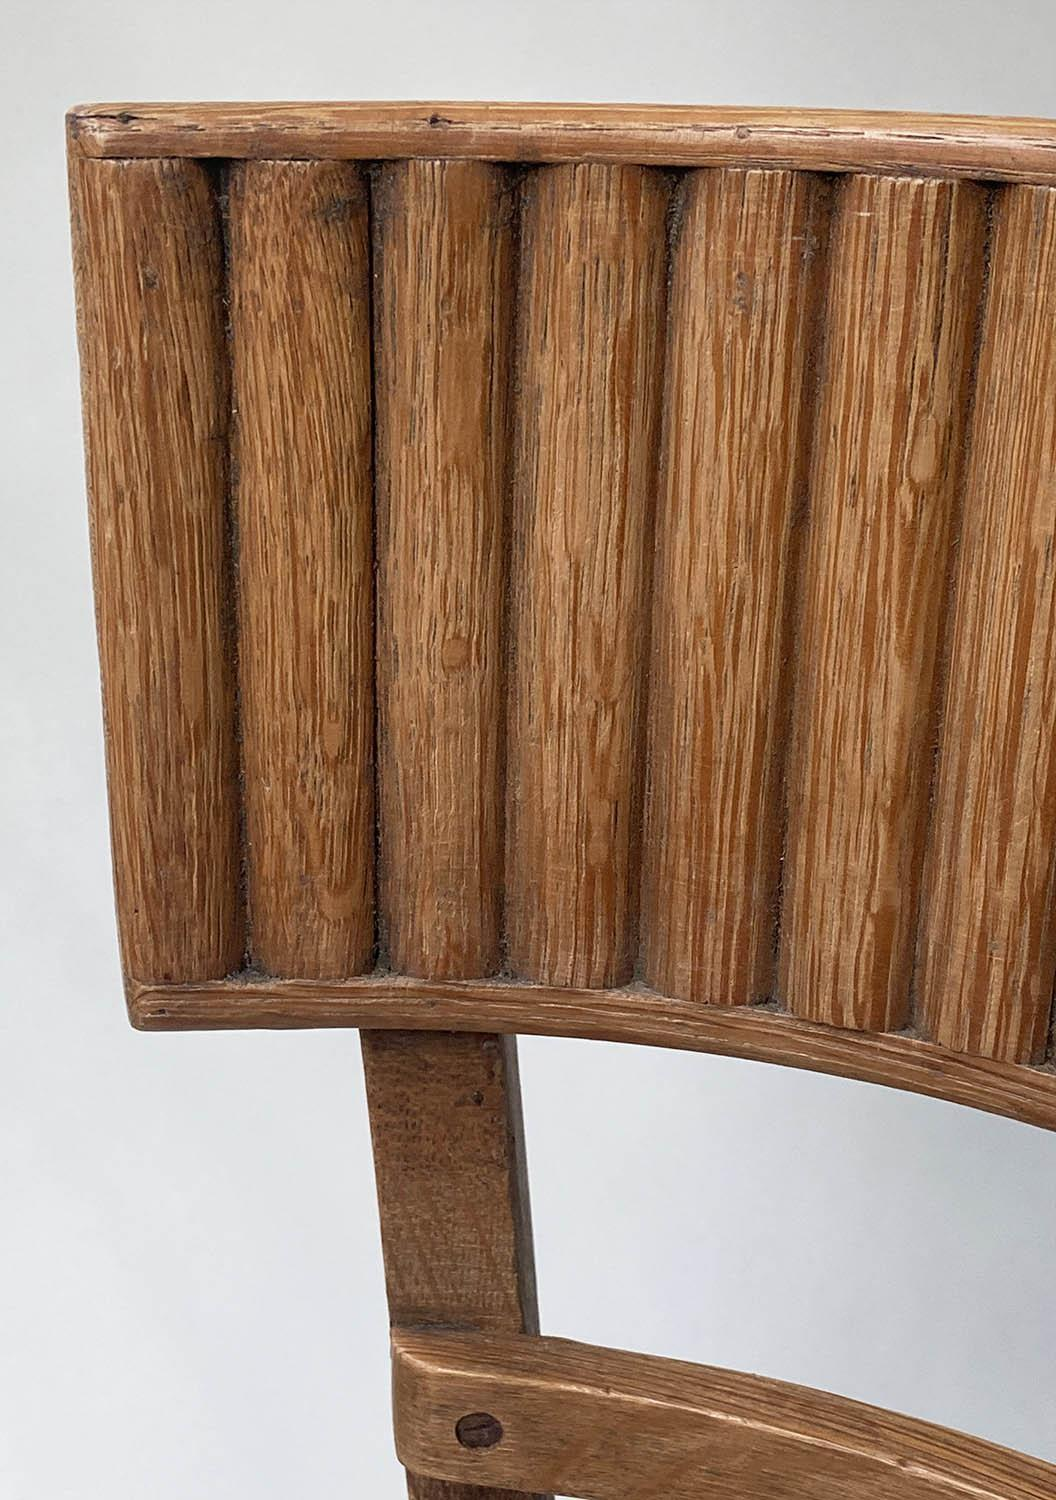 DINING CHAIRS, a set of four oak with ridged bar back and tweed seats. (4) - Image 4 of 5